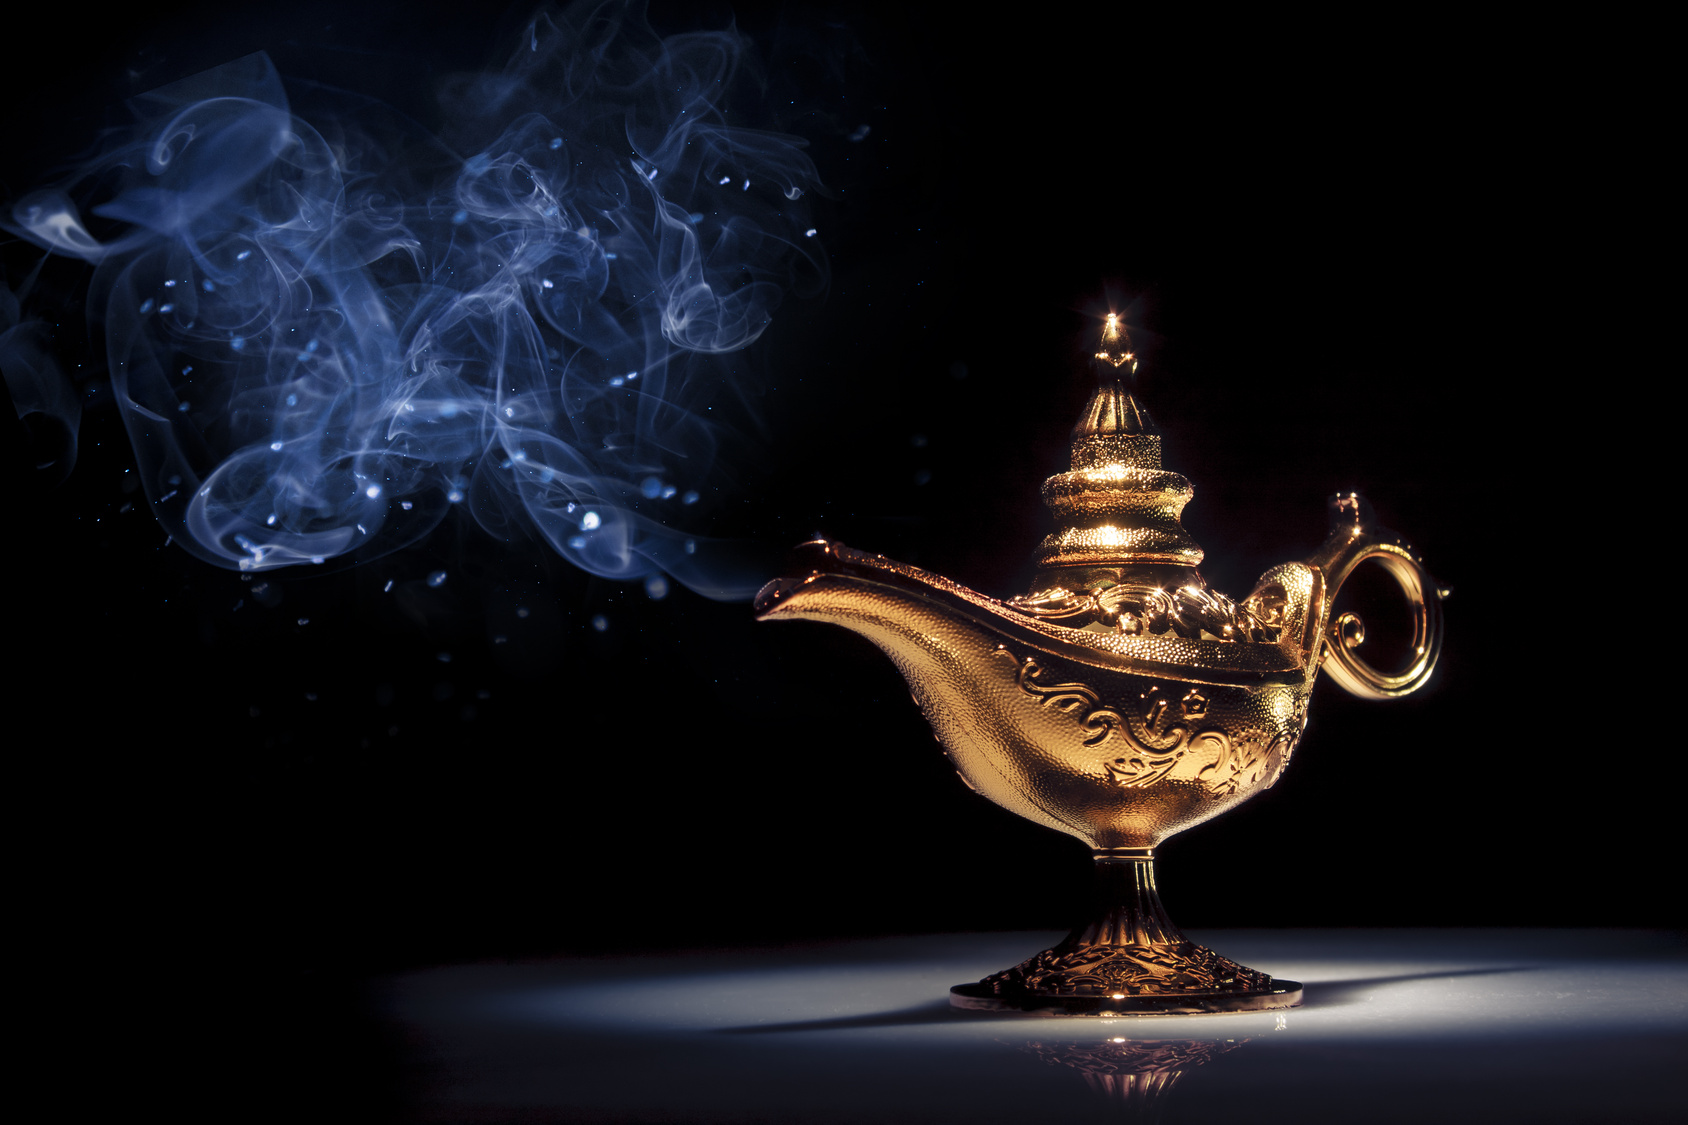 Magic Lamp My Three Wishes From A Genie